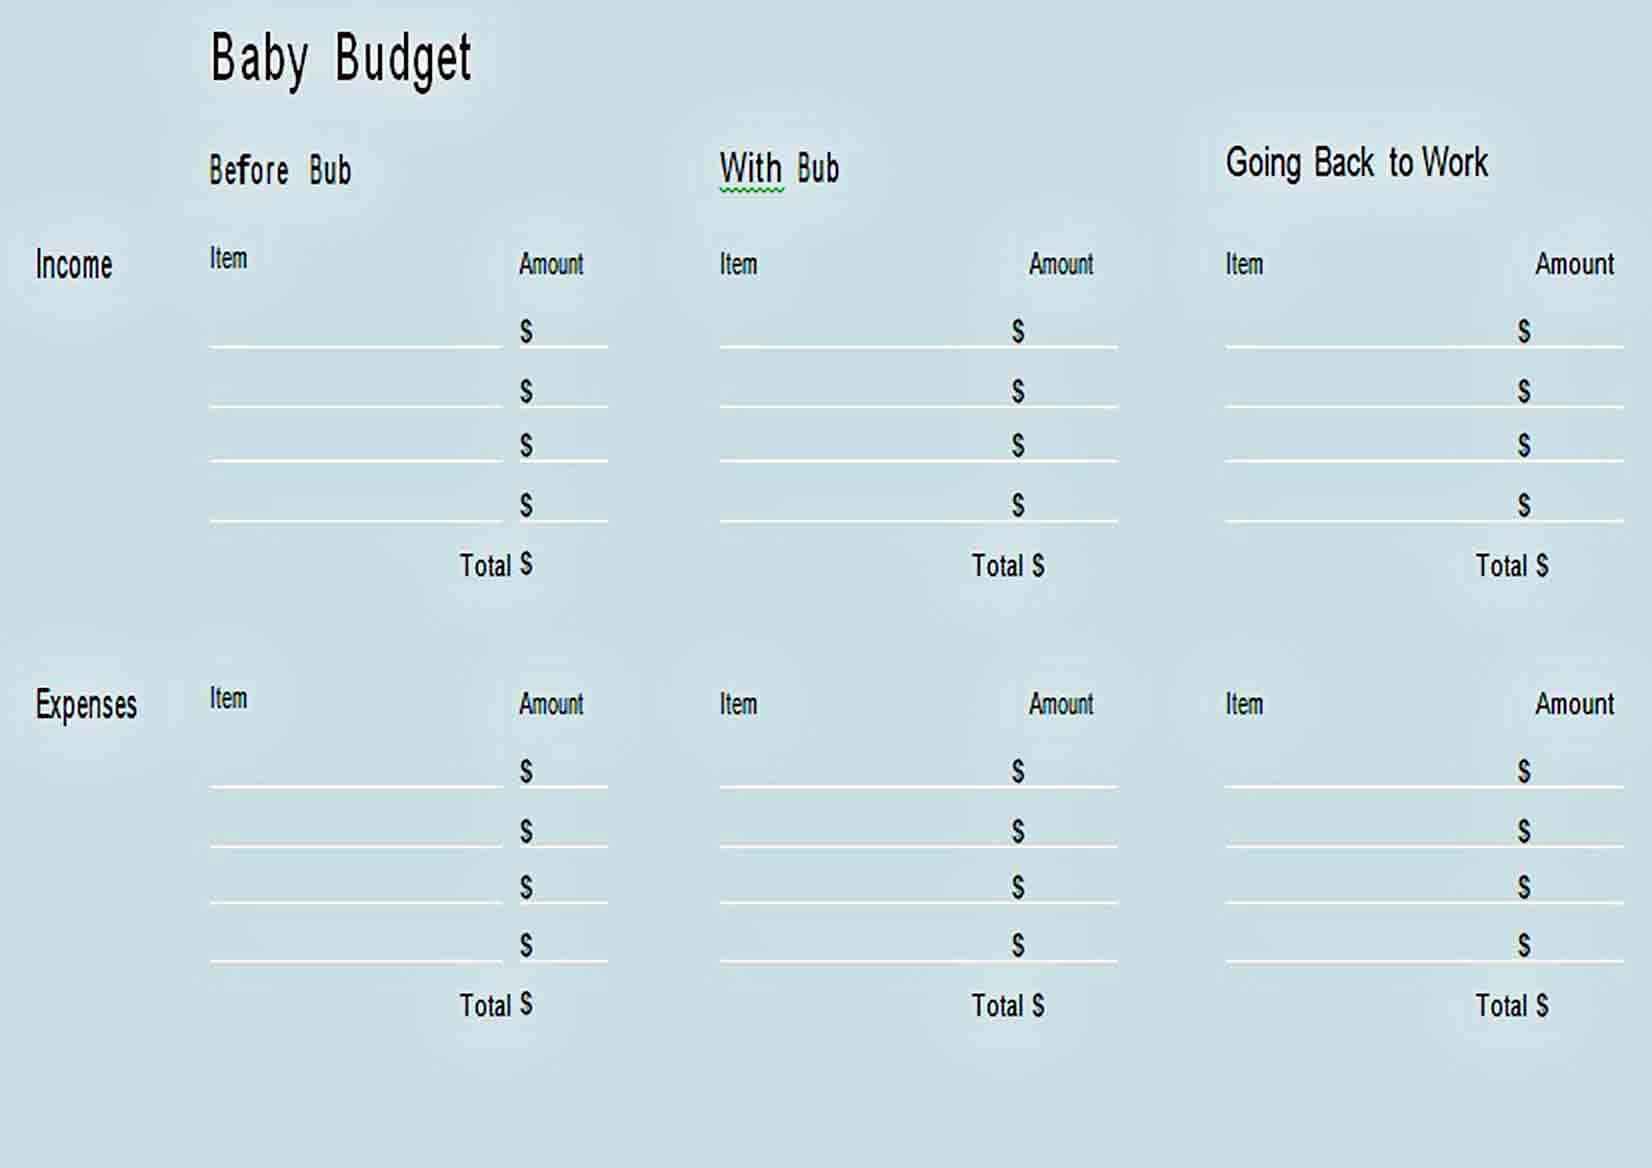 Basic Baby Budget Template sample